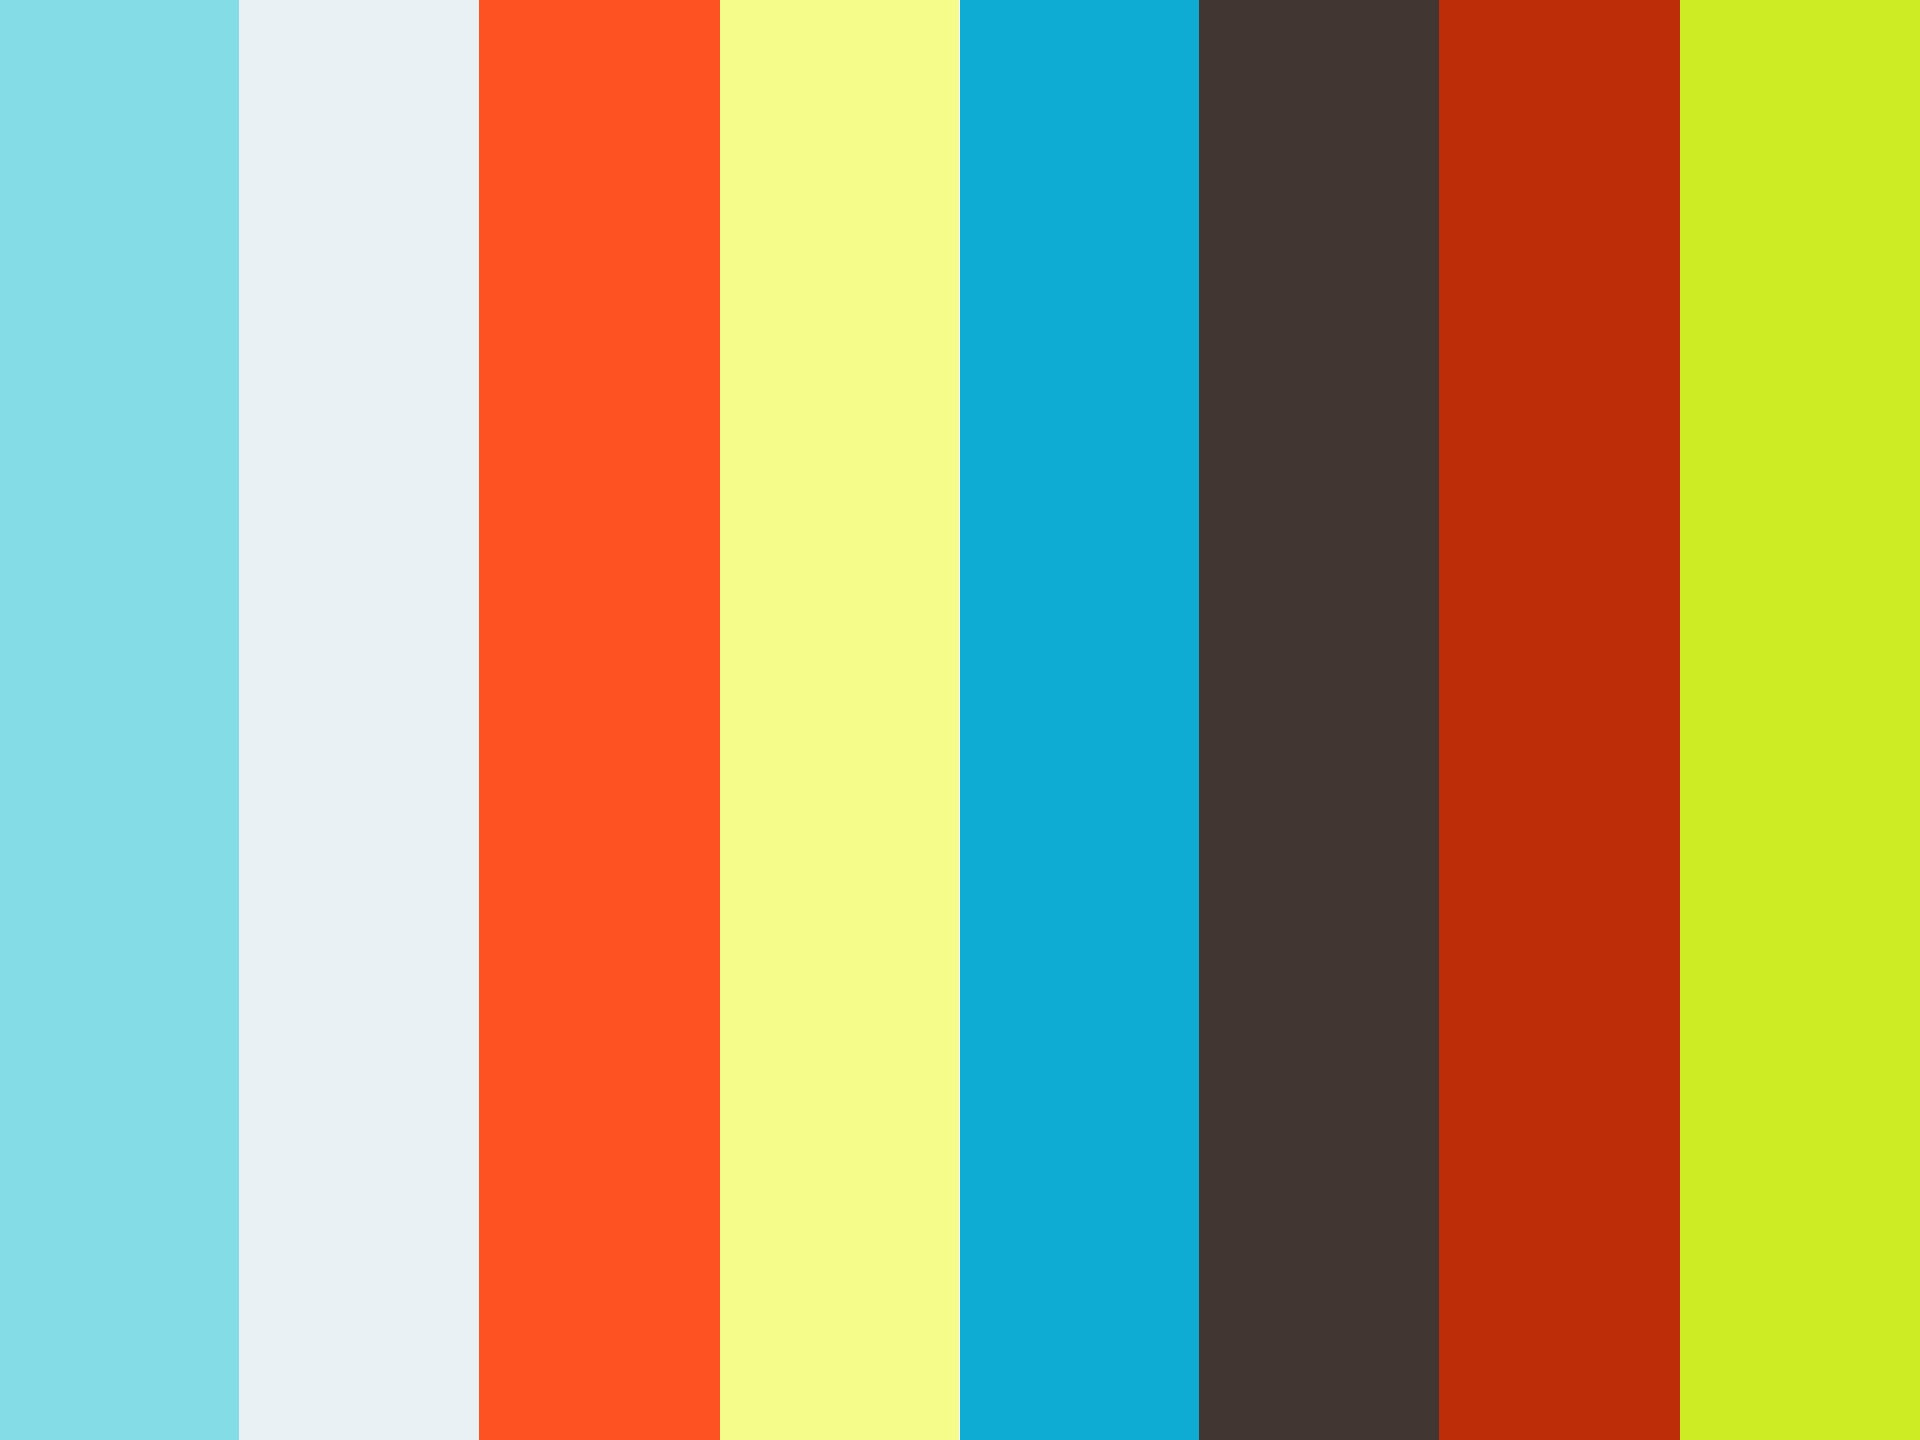 Bowel Preparation is Associated with Reduced Morbidity in Elderly Patients Undergoing Elective Colectomy 2016